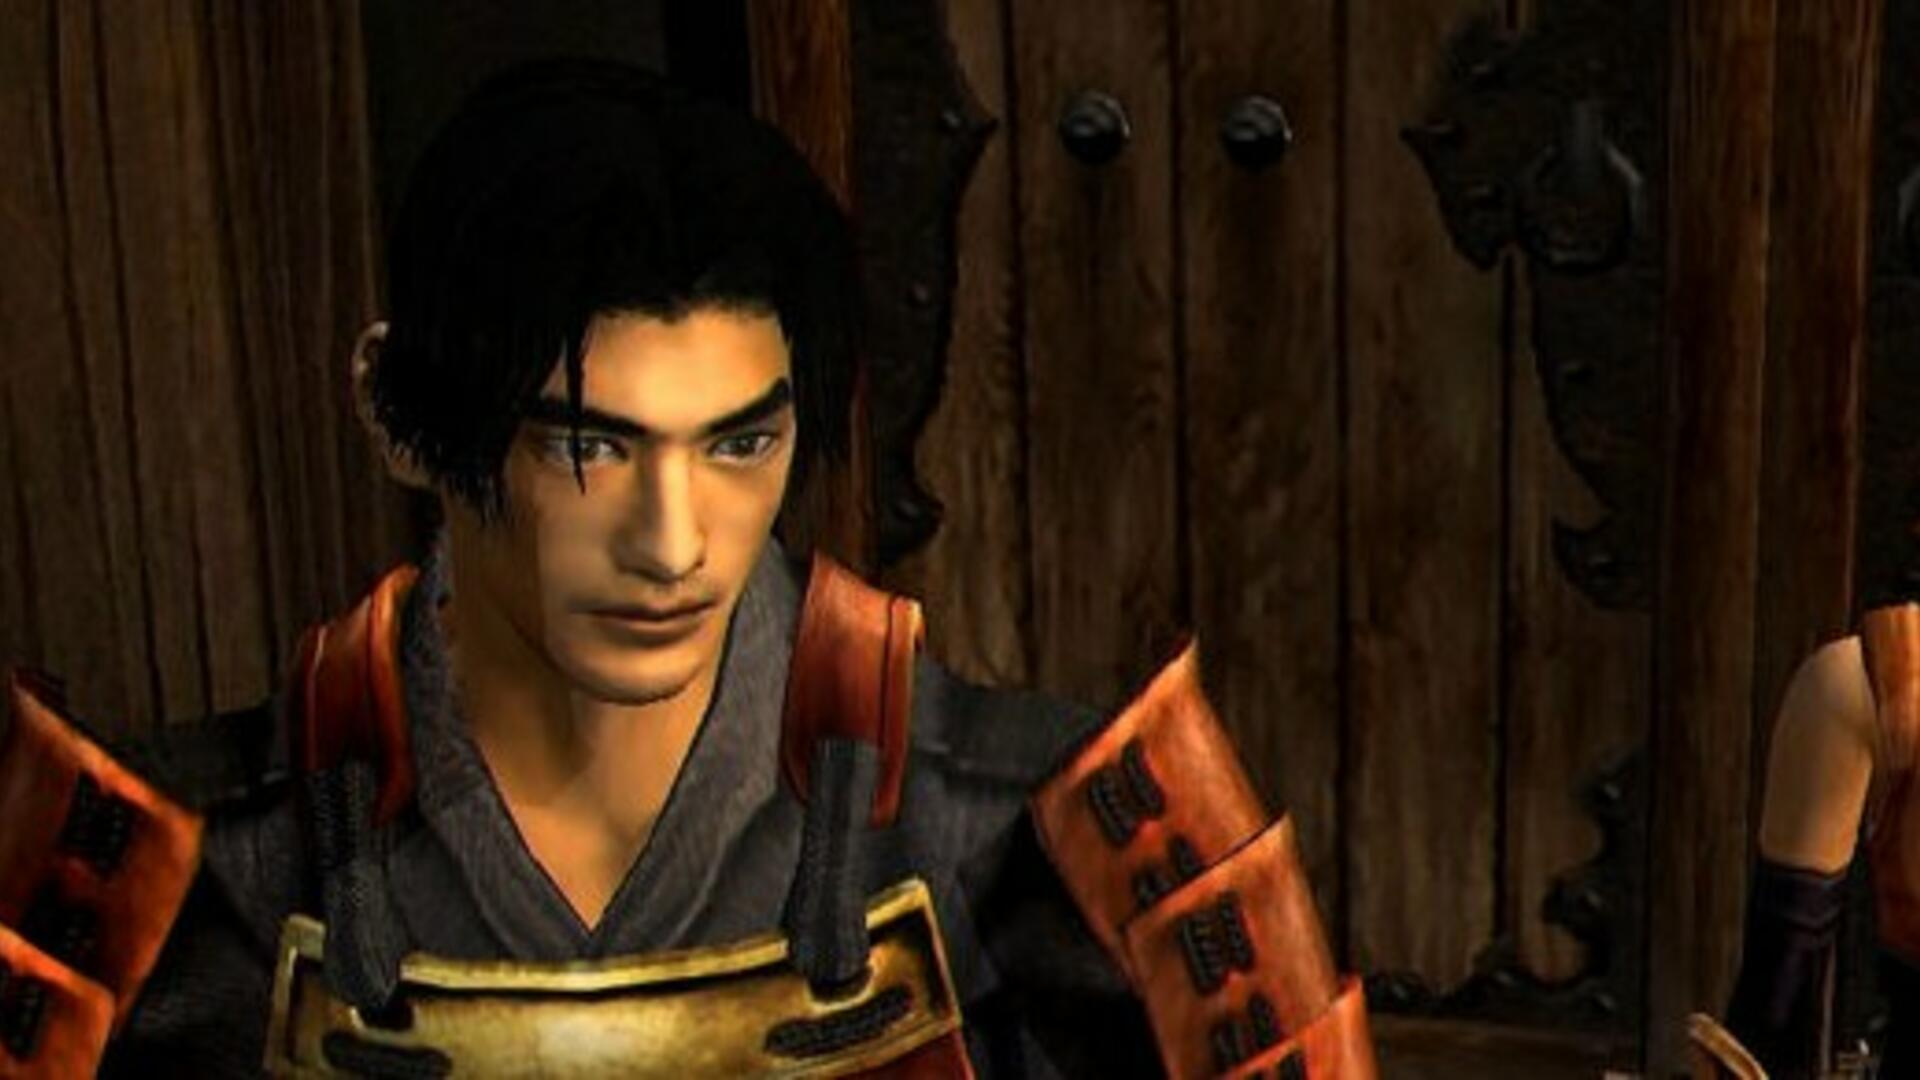 Onimusha: Warlords Comes to PS4, Xbox One, and Switch in January 2019